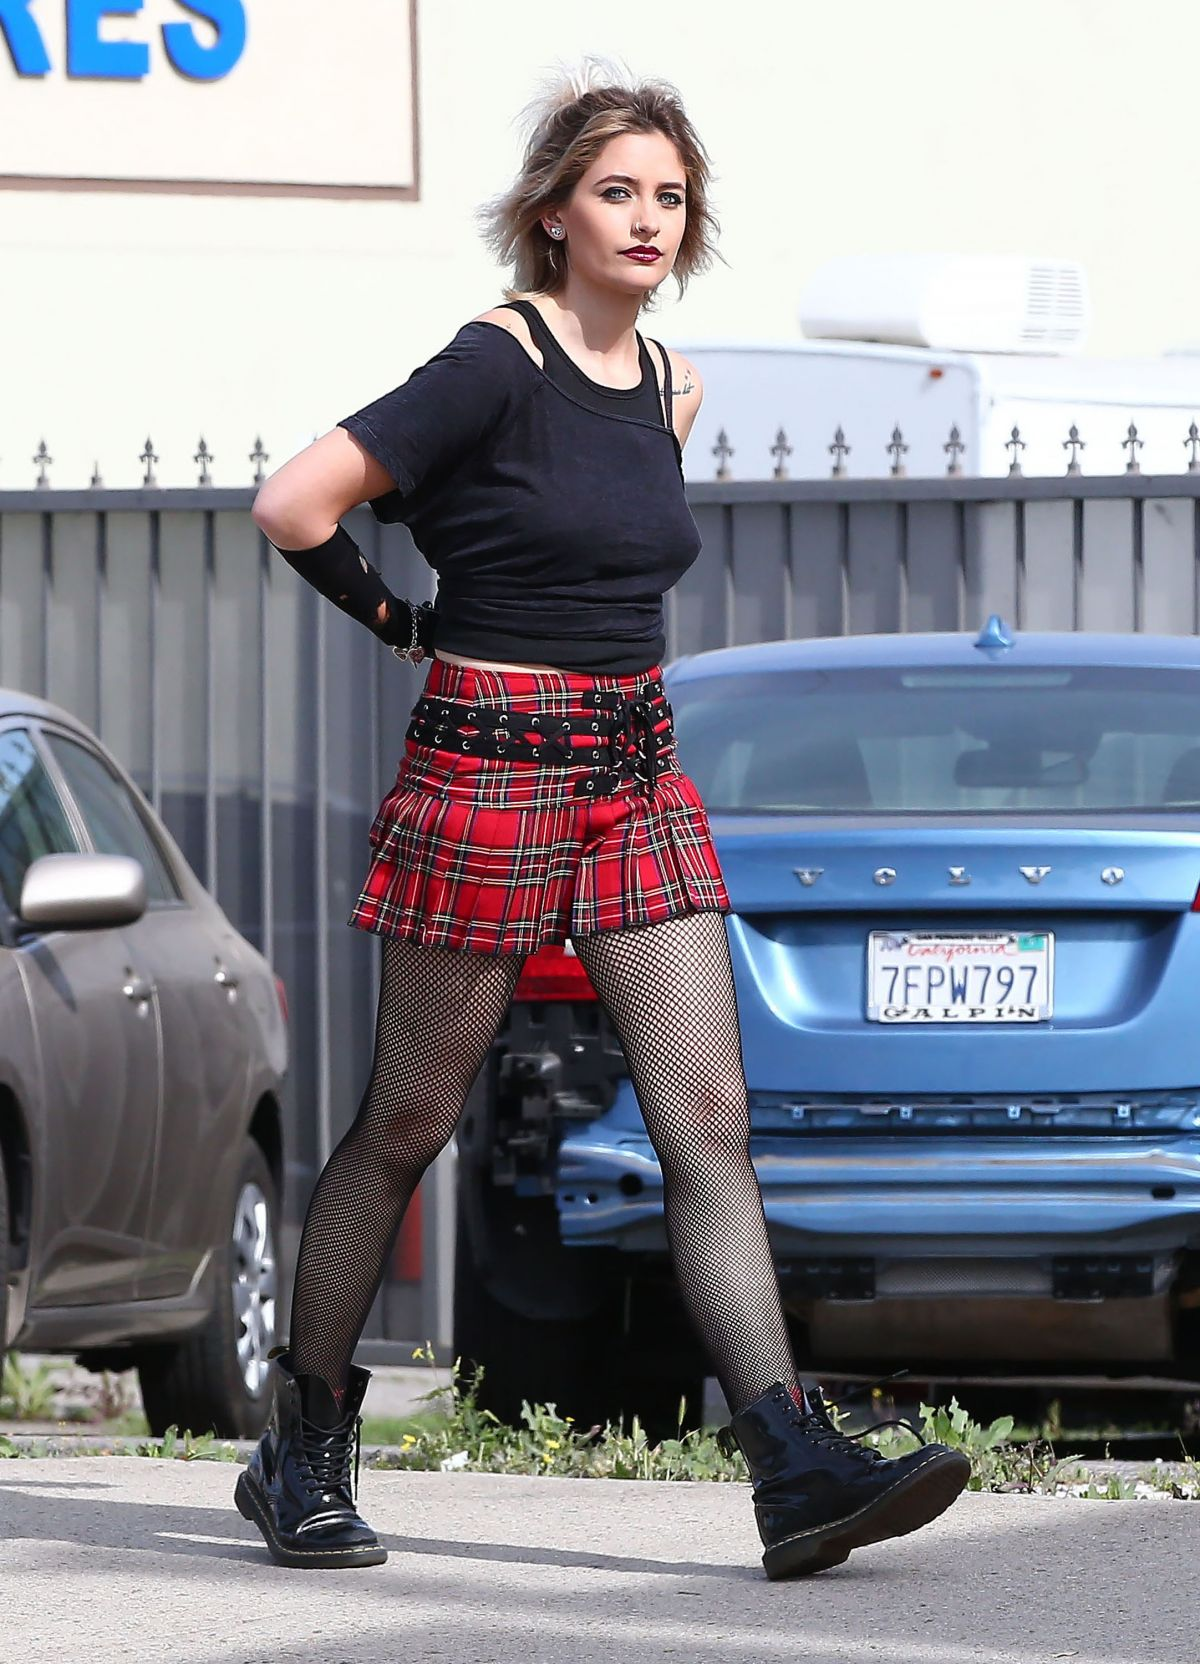 paris jackson in plaid skirt out in los angeles 04  27  2017